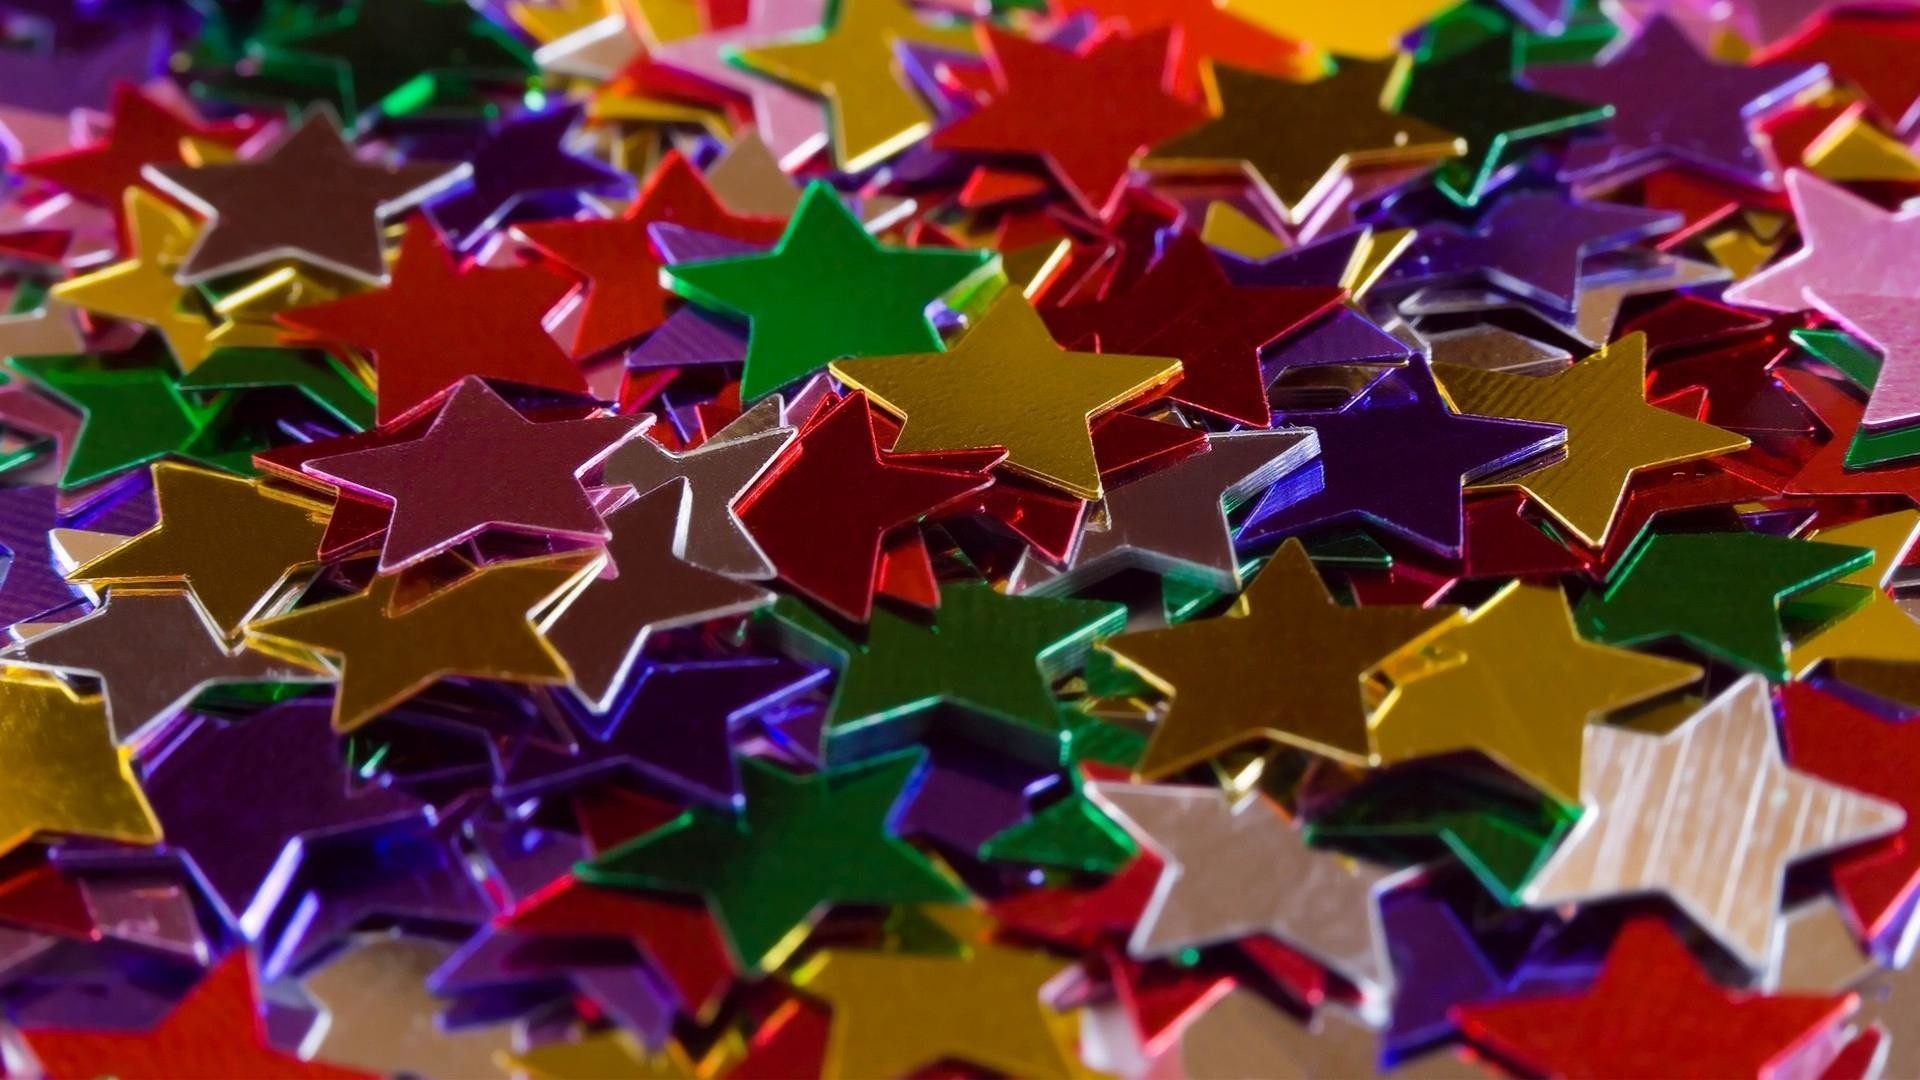 1920x1080 Colorful-stars-background-wallpaper-HD